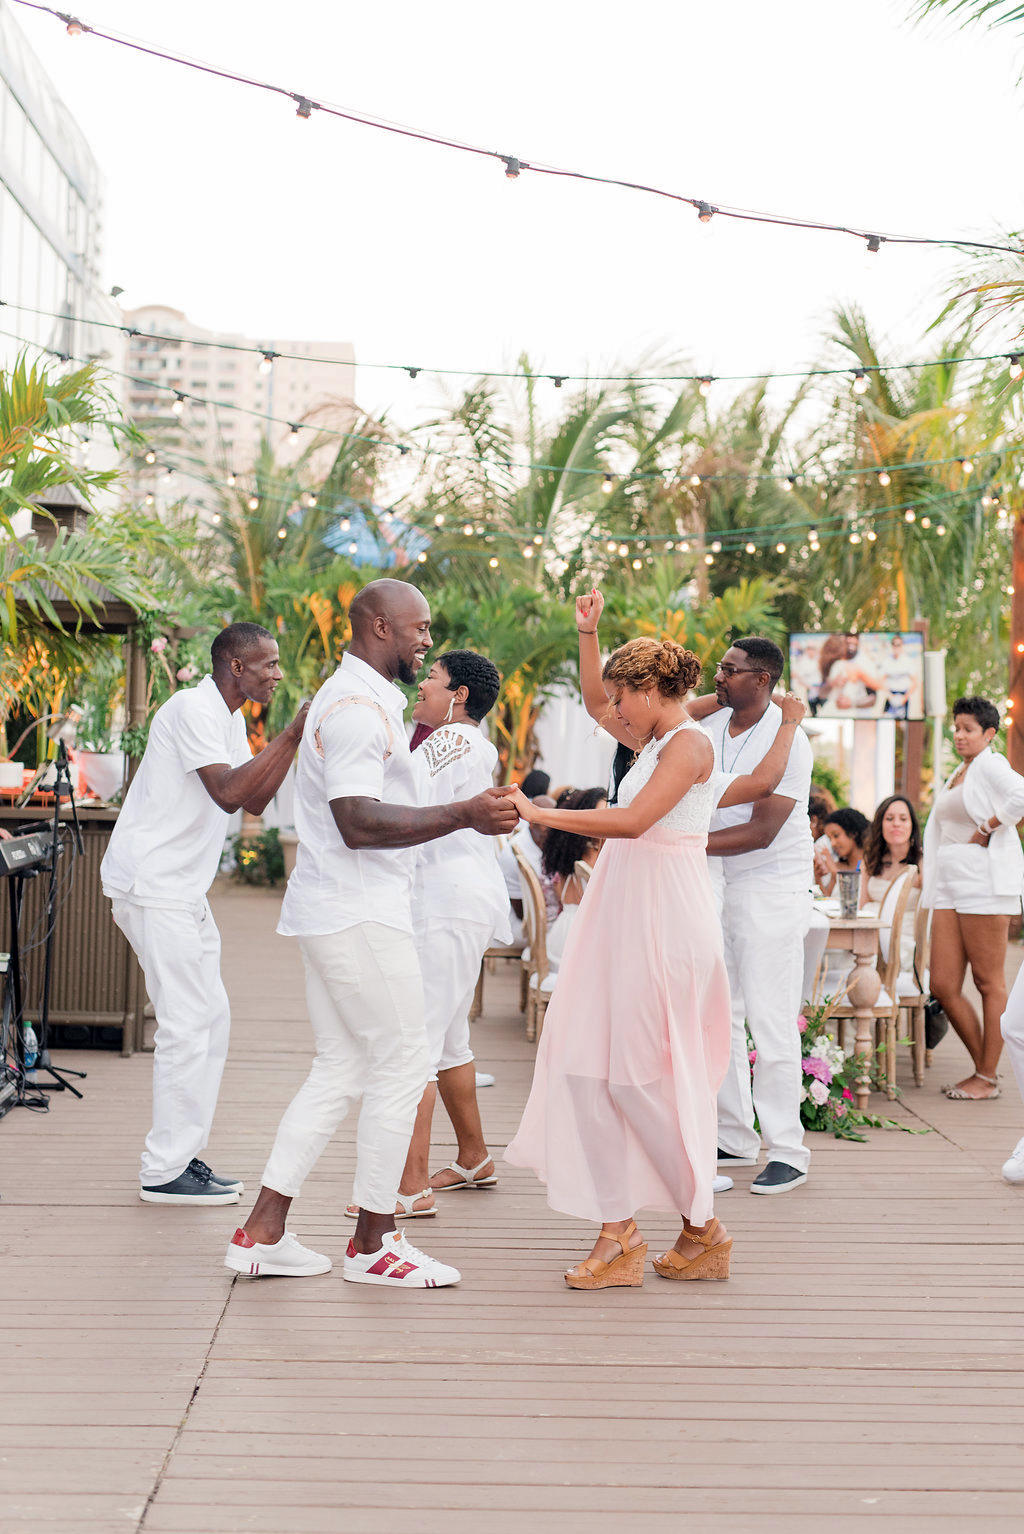 couples dancing outdoors on dock